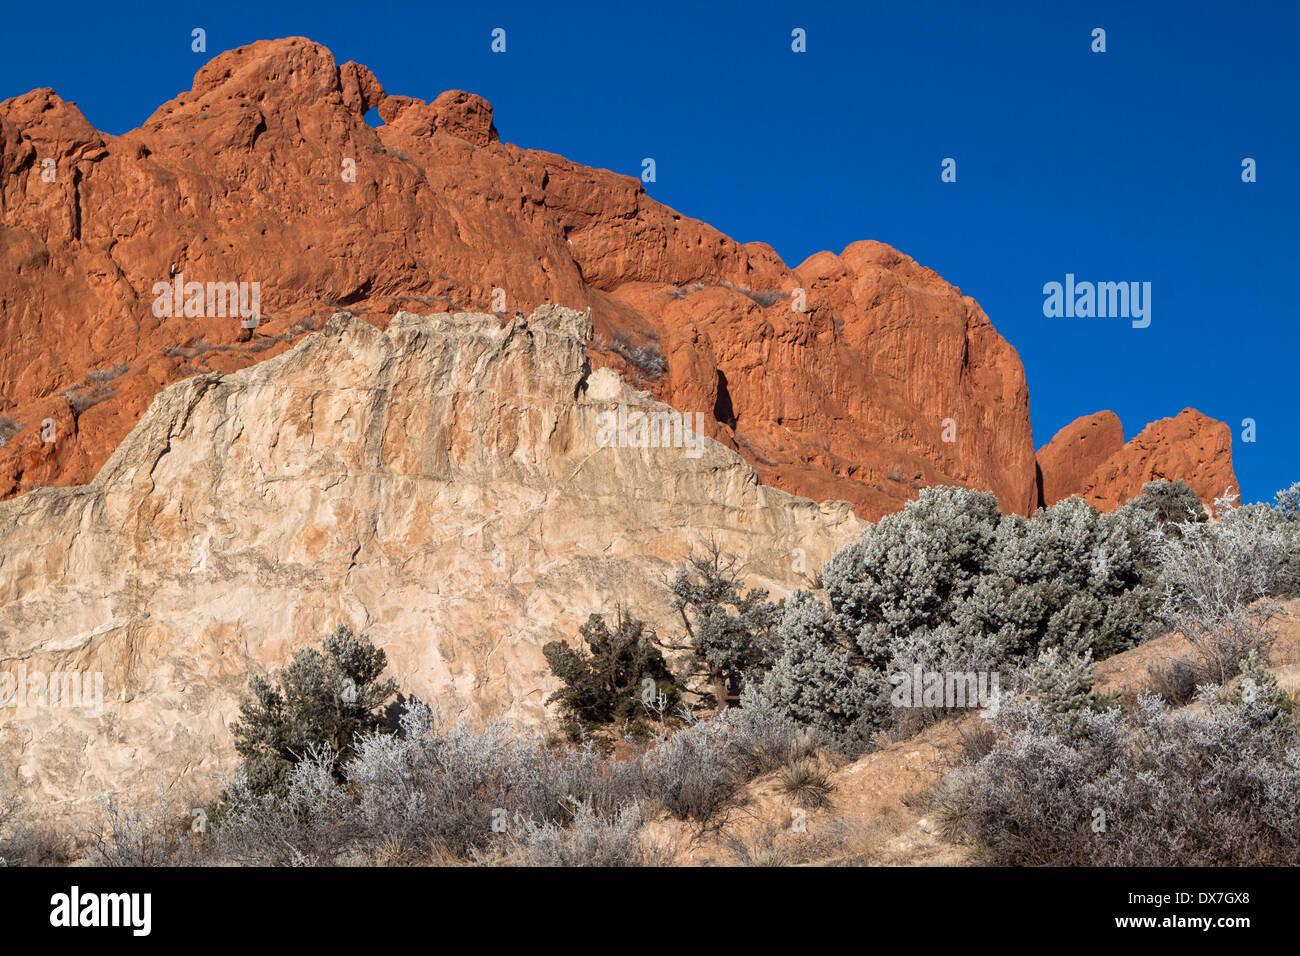 Kissing Camels And White Rock In Garden Of The Gods Park Colorado Stock Photo Royalty Free